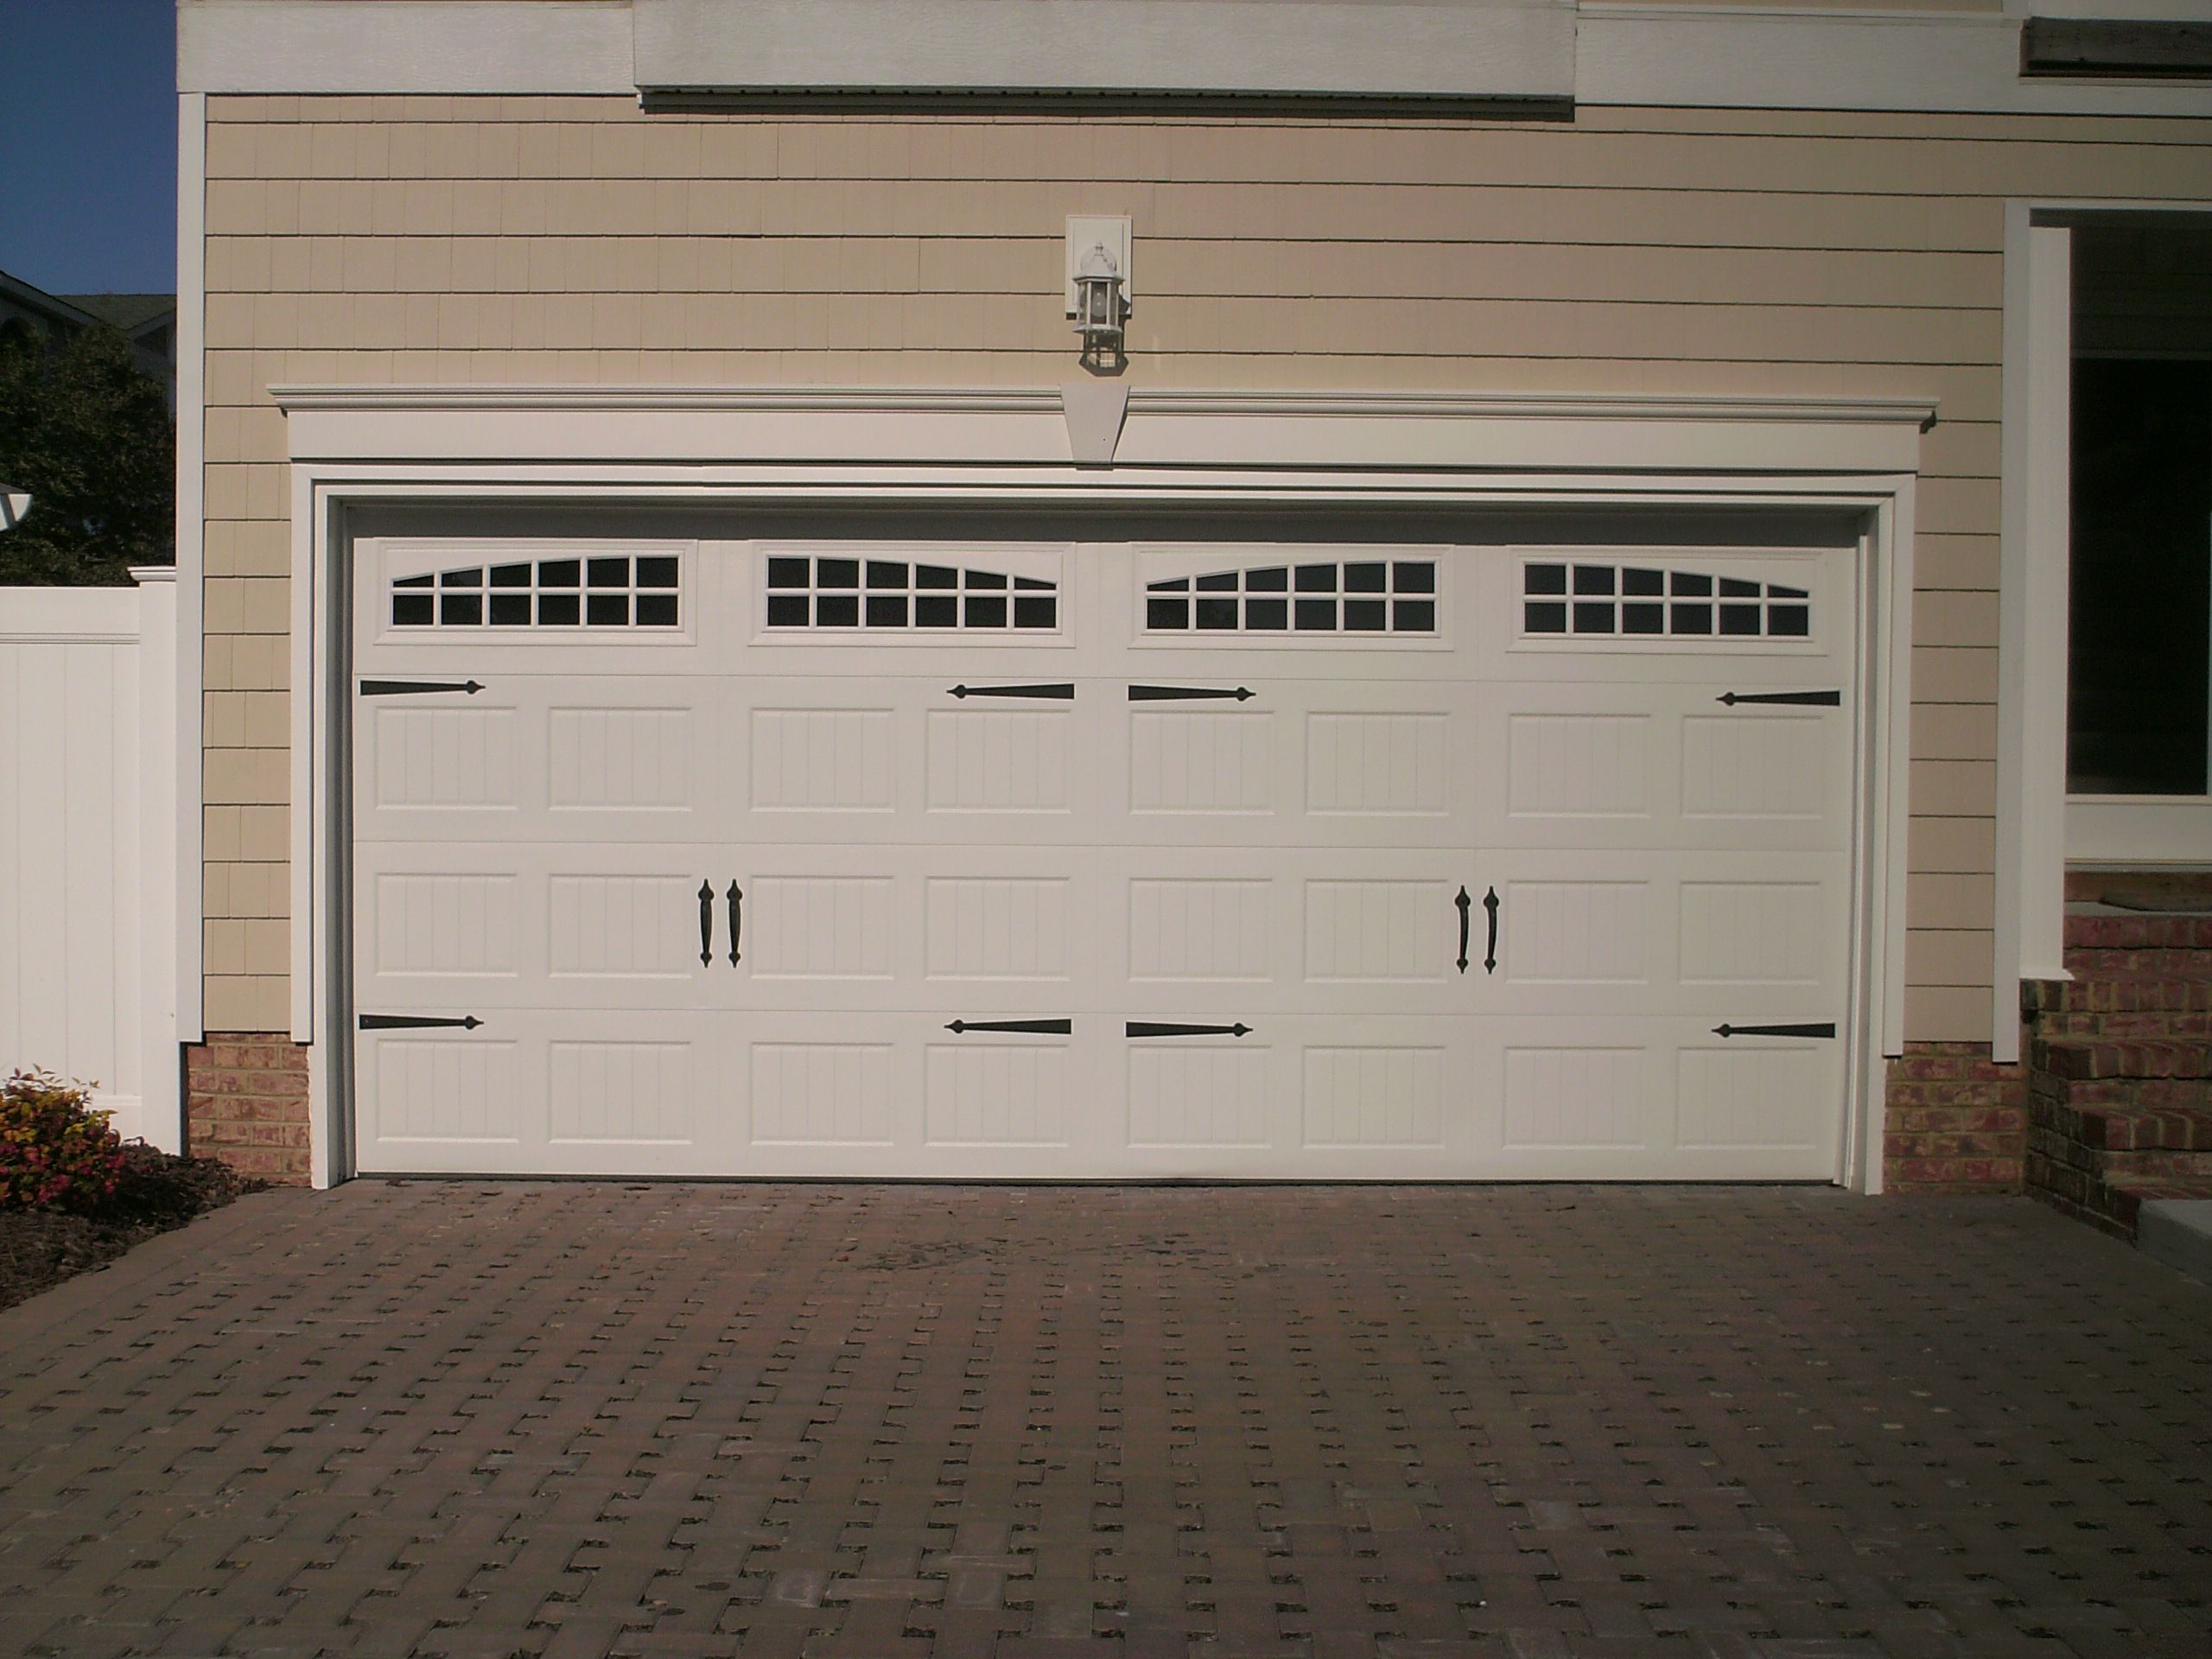 Carriage double garage door - Find This Pin And More On Garage Doors Ideas Bright White Double Carriage